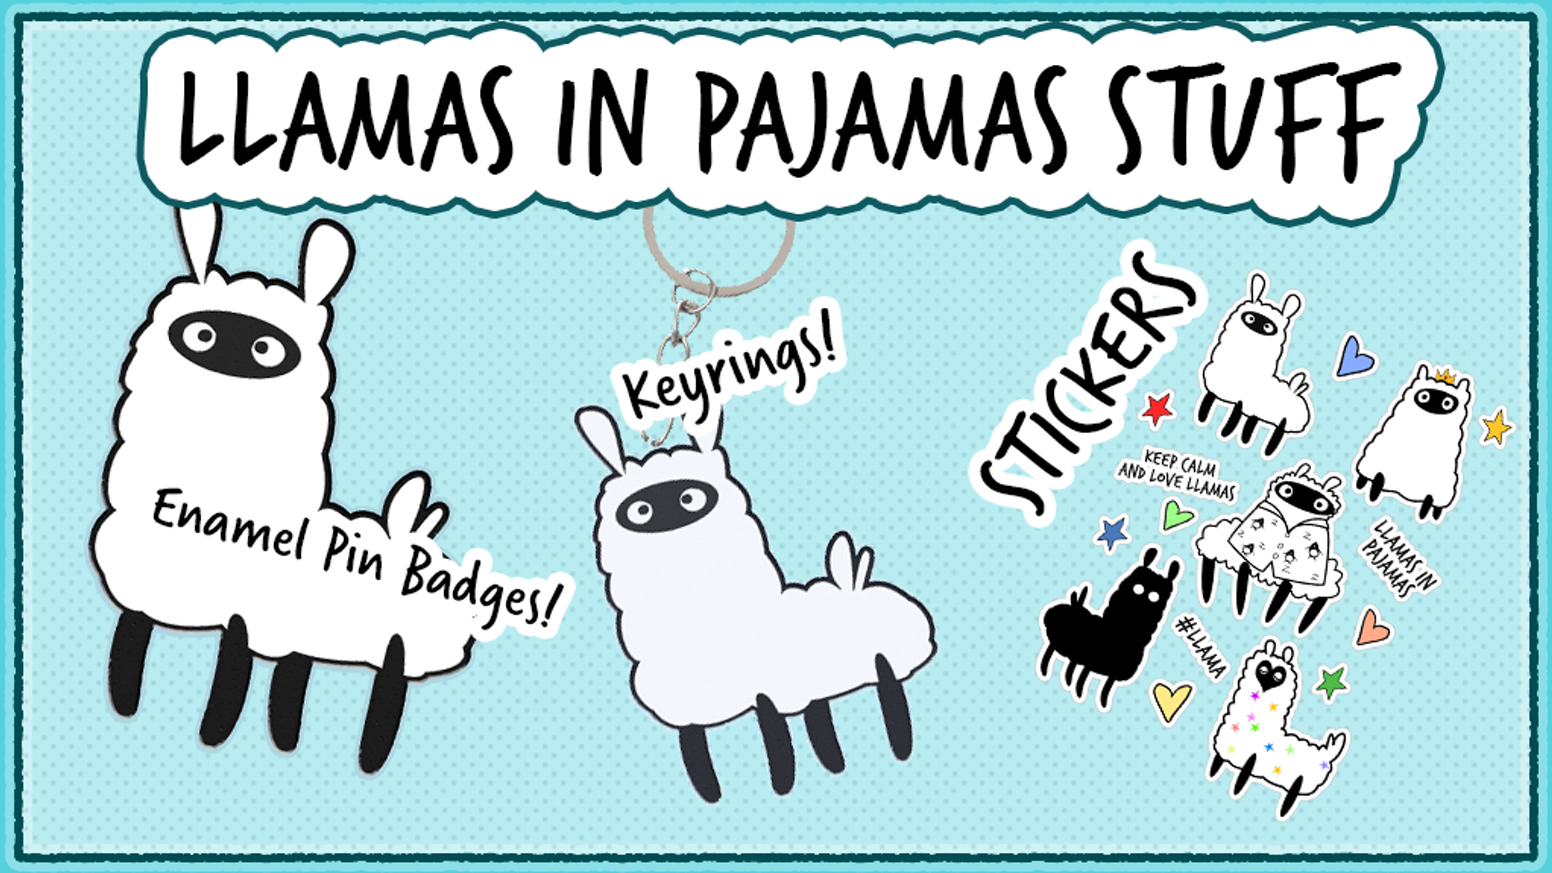 Llamas in Pajamas Pin Badges! by Sarah Bates — Kickstarter